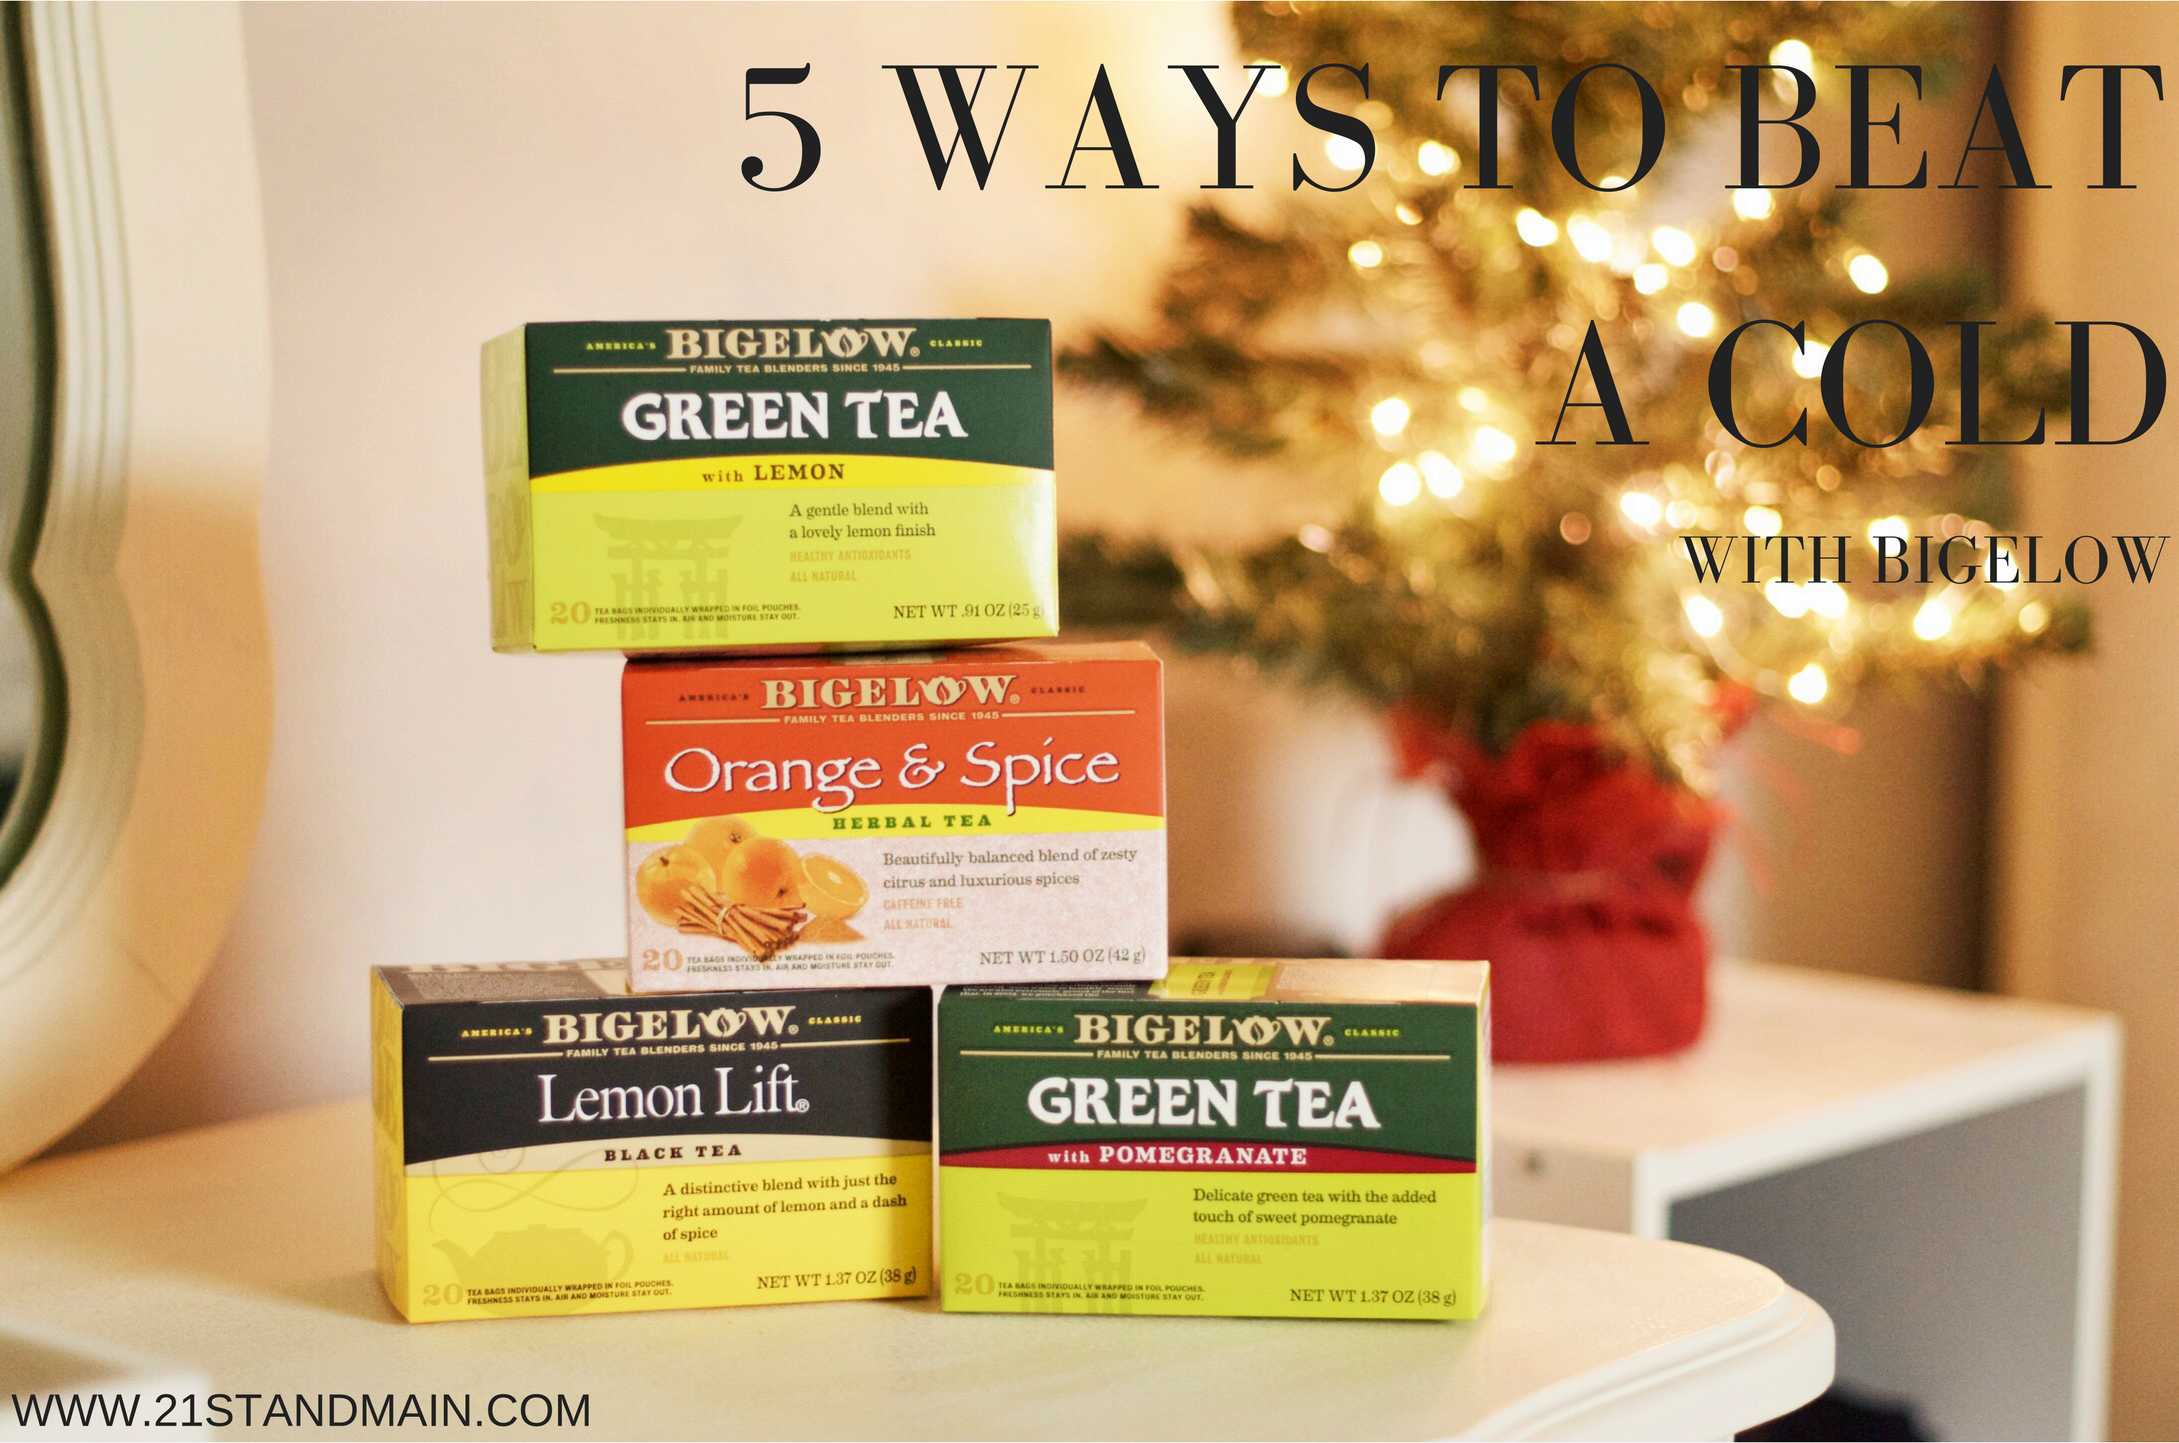 ways to beat a cold #TeaProudly #ad